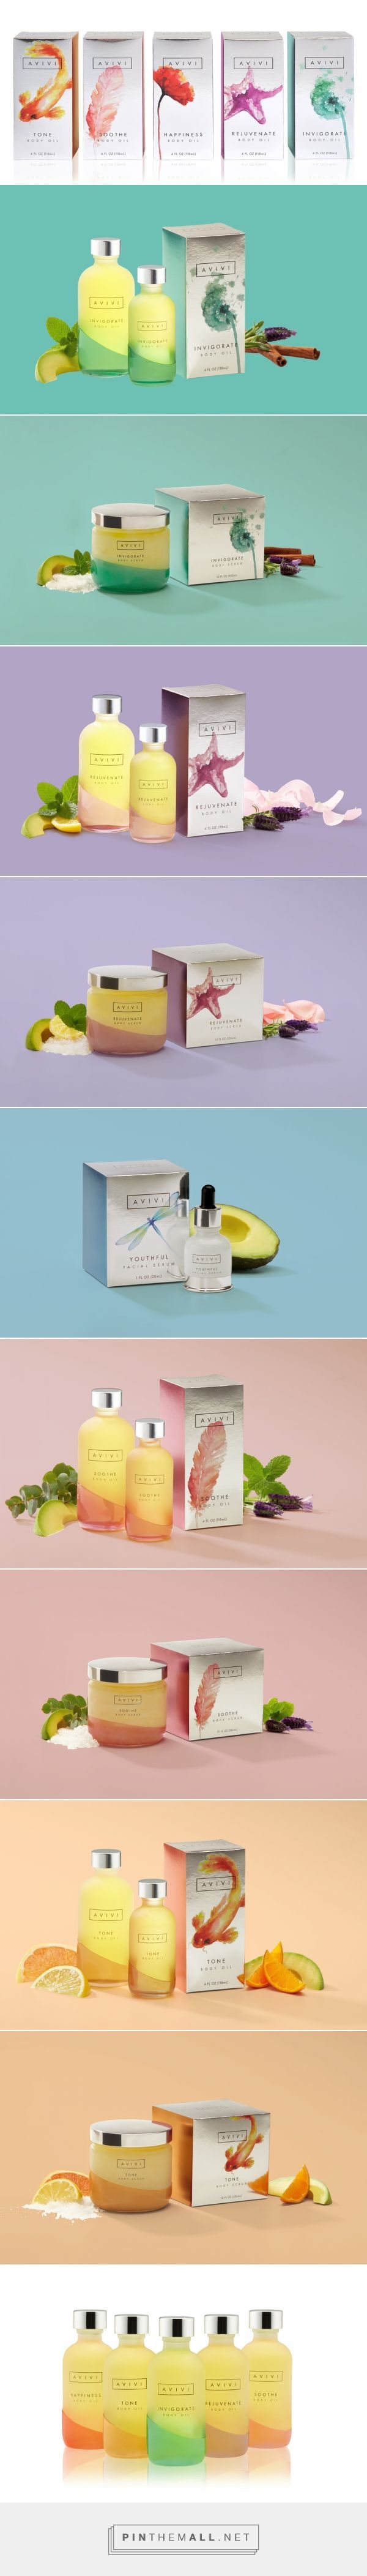 Avivi cosmetics by MSLK - a range of cosmetics containing avocado and looking oh-so-edible